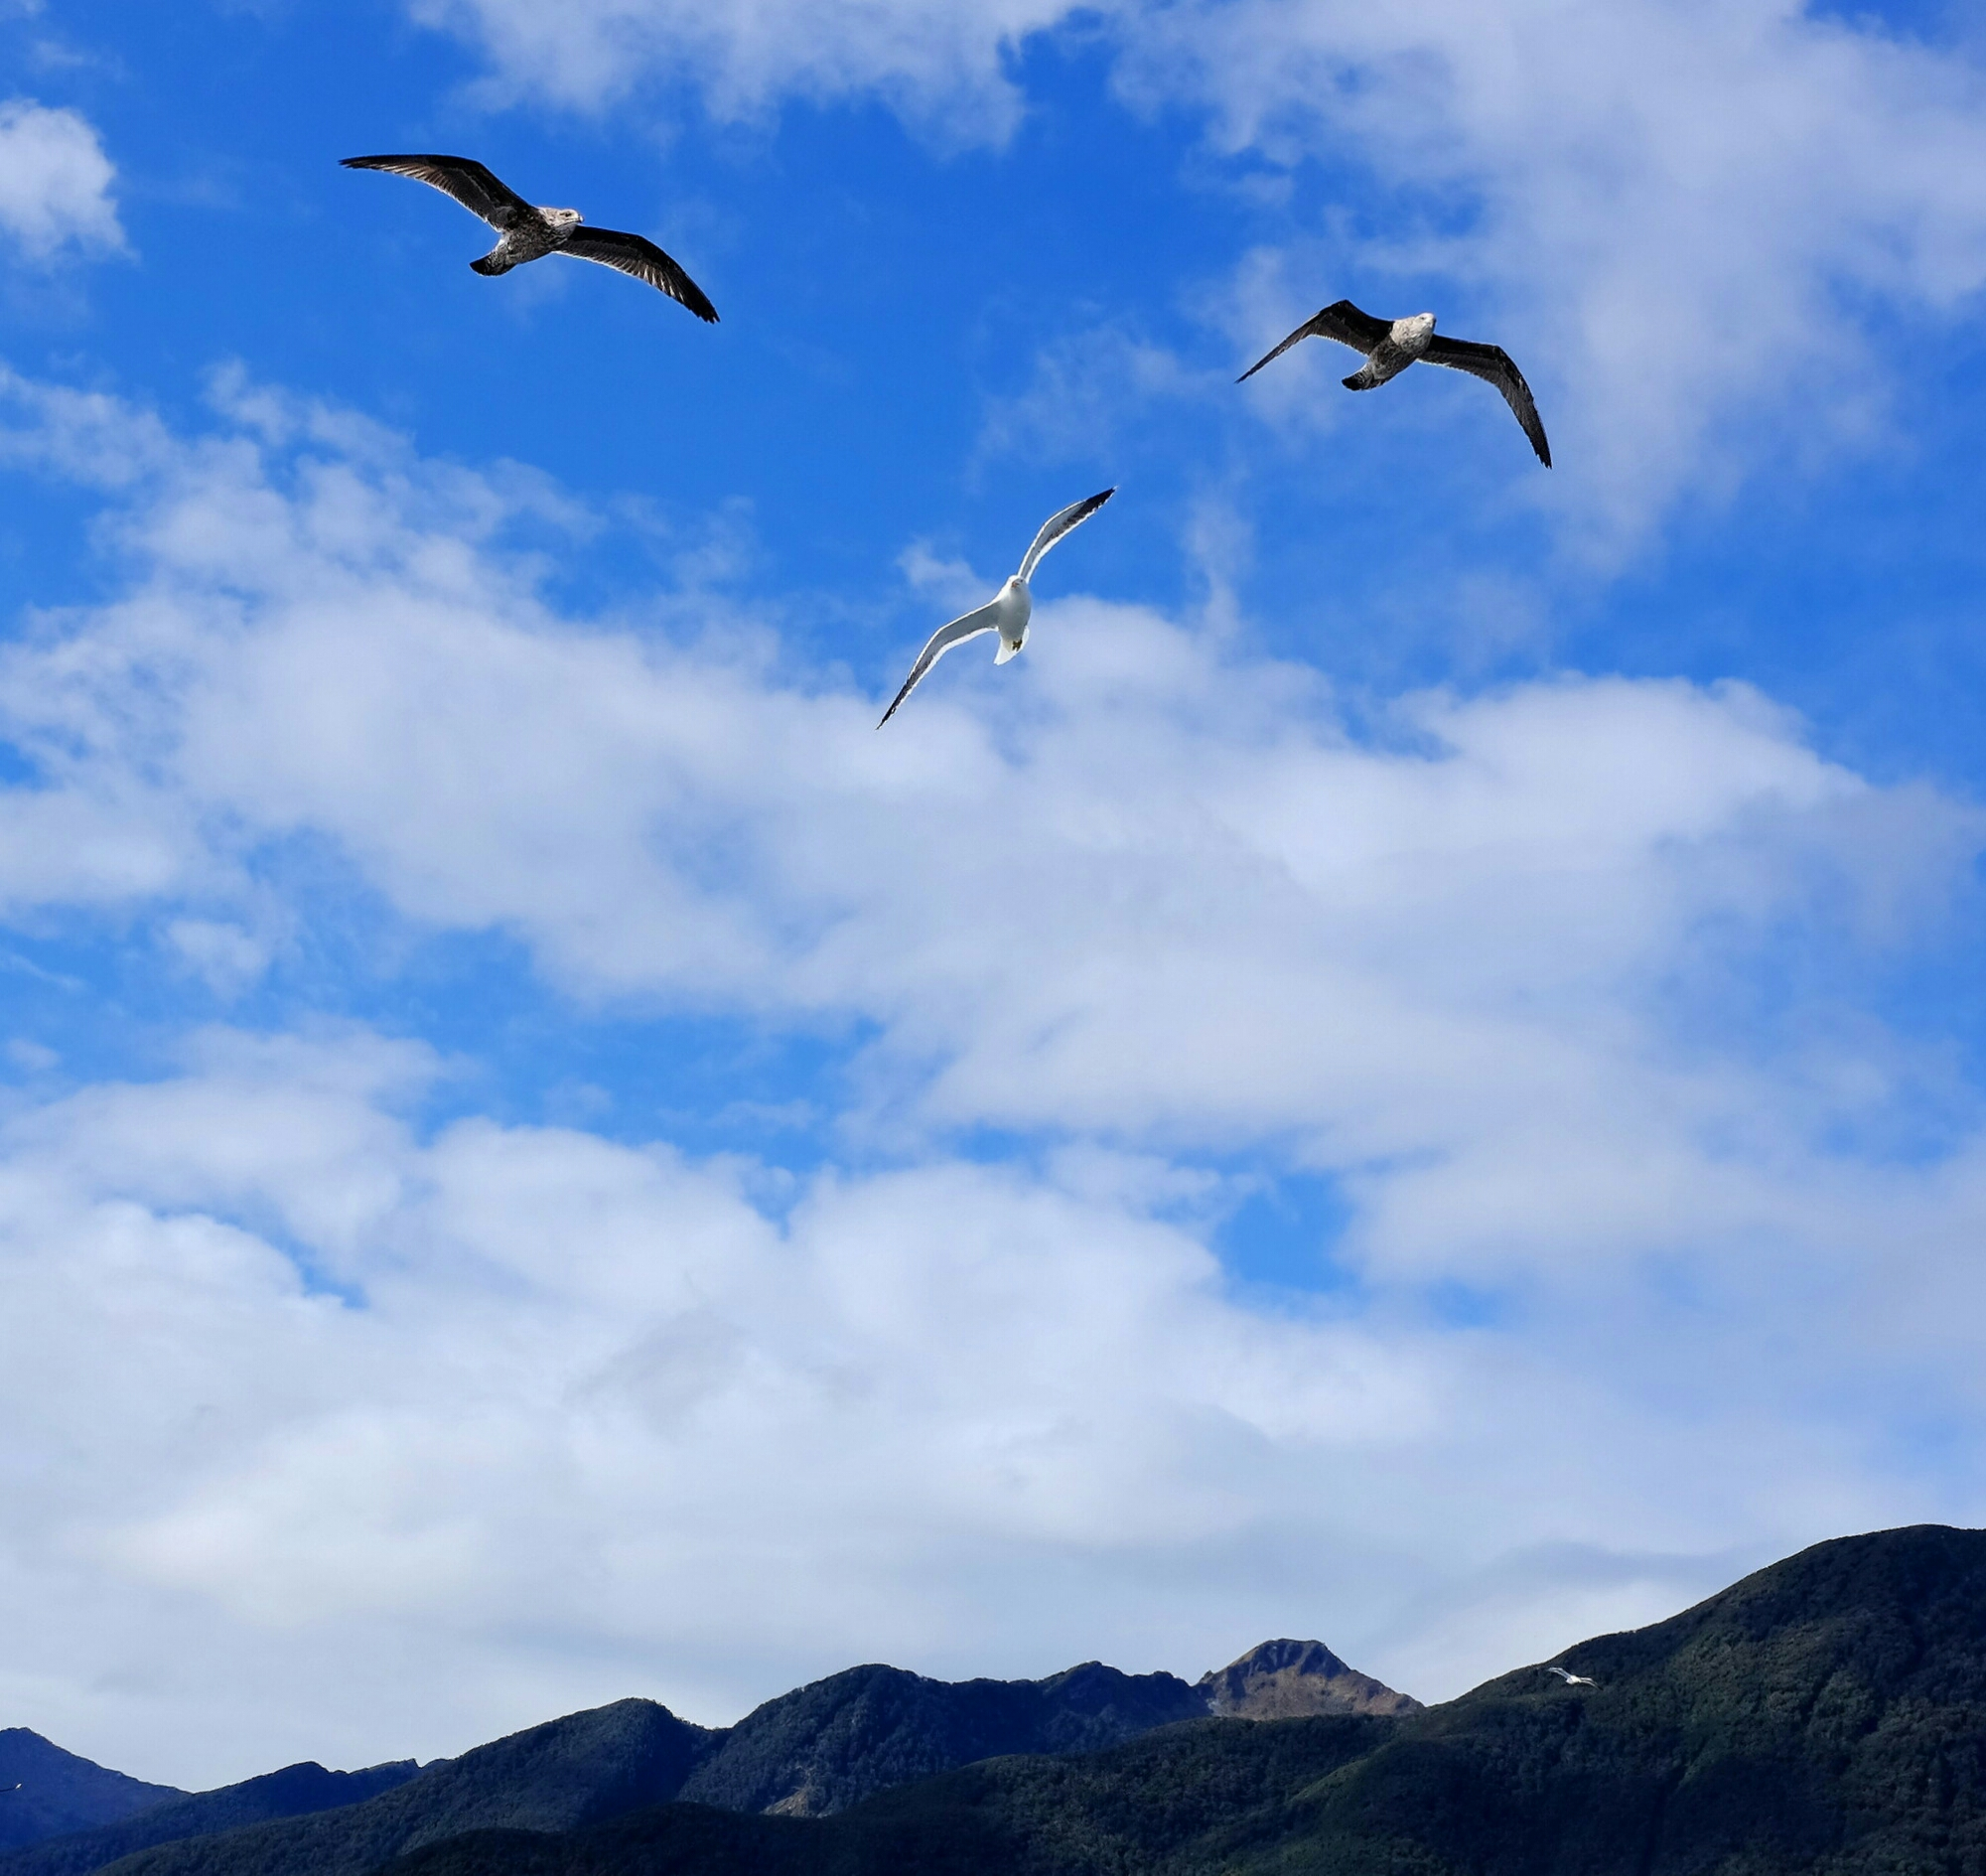 3 seagulls flying over the water at Doubtful Sound in New Zealand